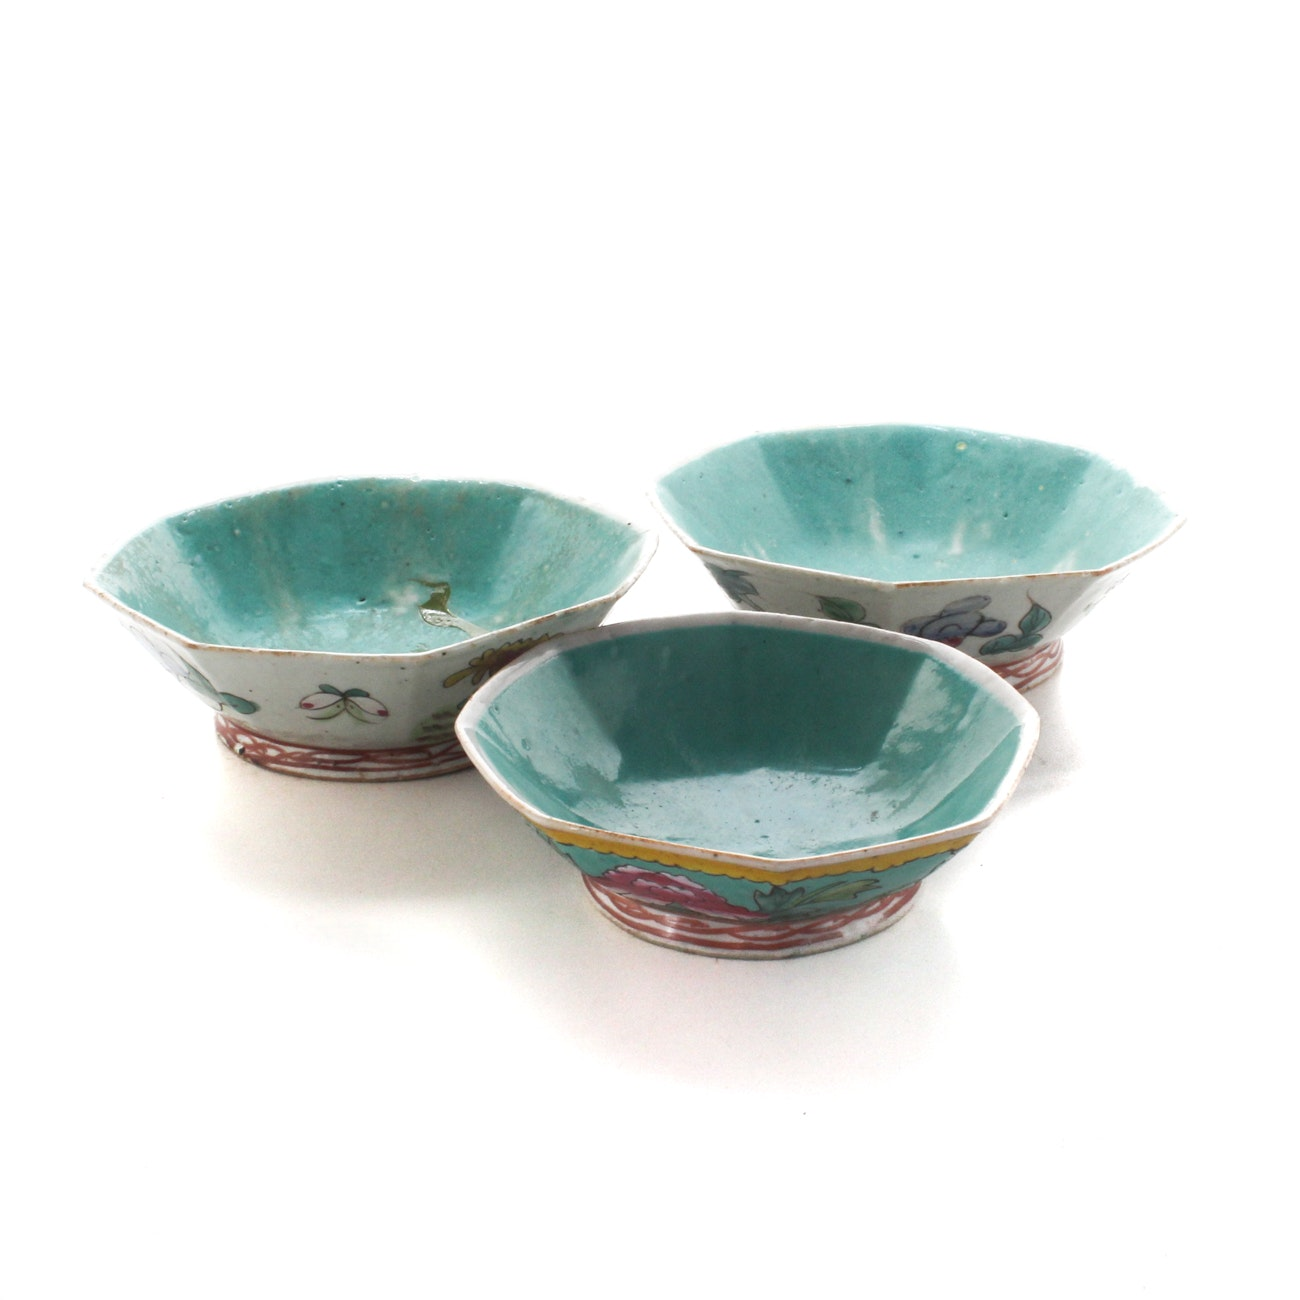 Antique Hand-Painted Chinese Porcelain Bowls